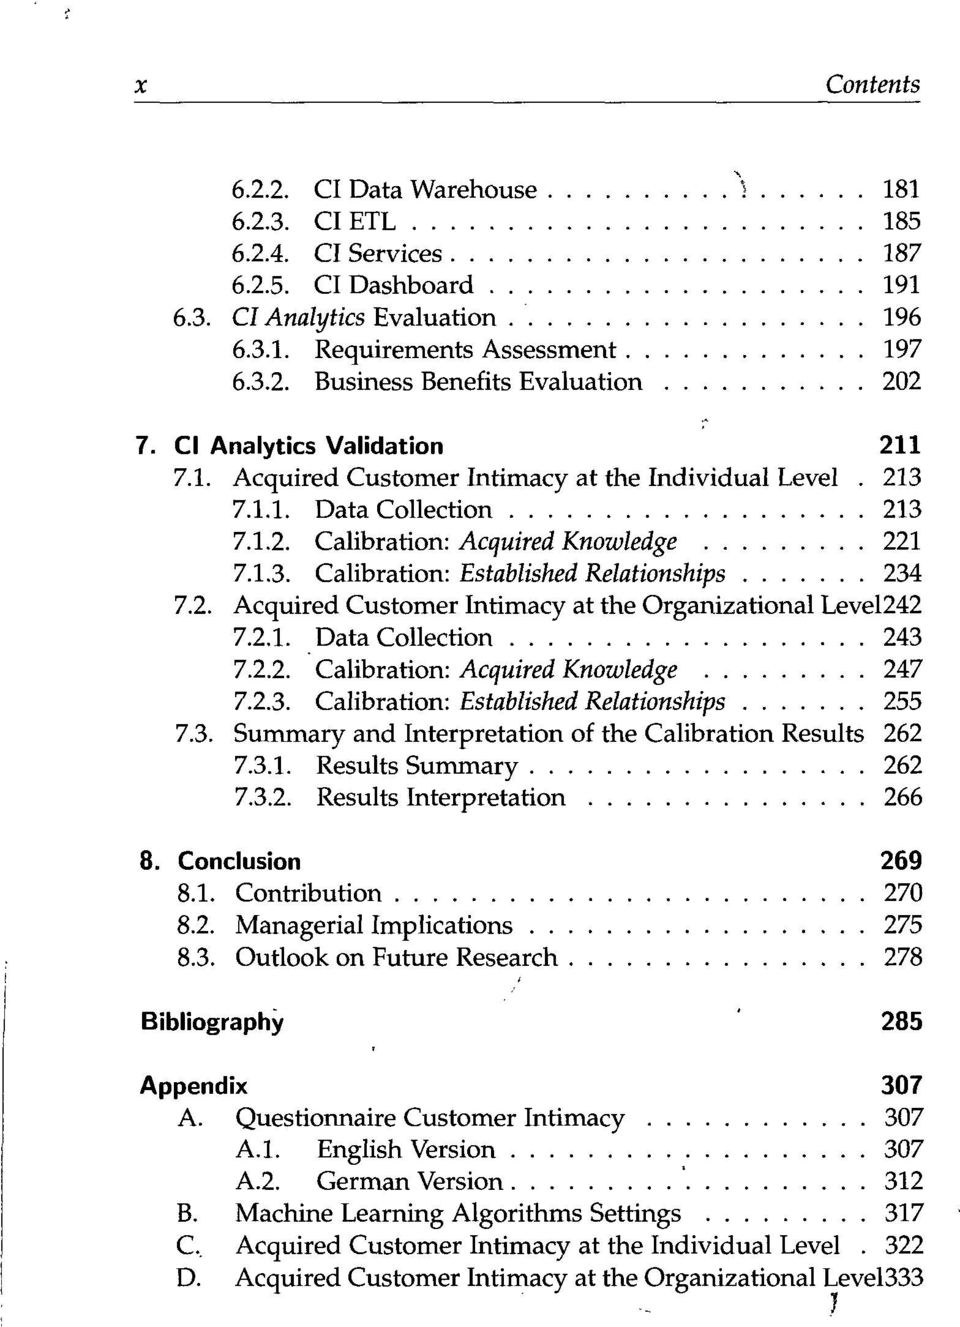 2. Acquired Customer Intimacy at the Organizational Level242 7.2.1. Data Collection 243 7.2.2. Calibration: Acquired Knowledge 247 7.2.3. Calibration: Established Relationships 255 7.3. Summary and Interpretation of the Calibration Results 262 7.